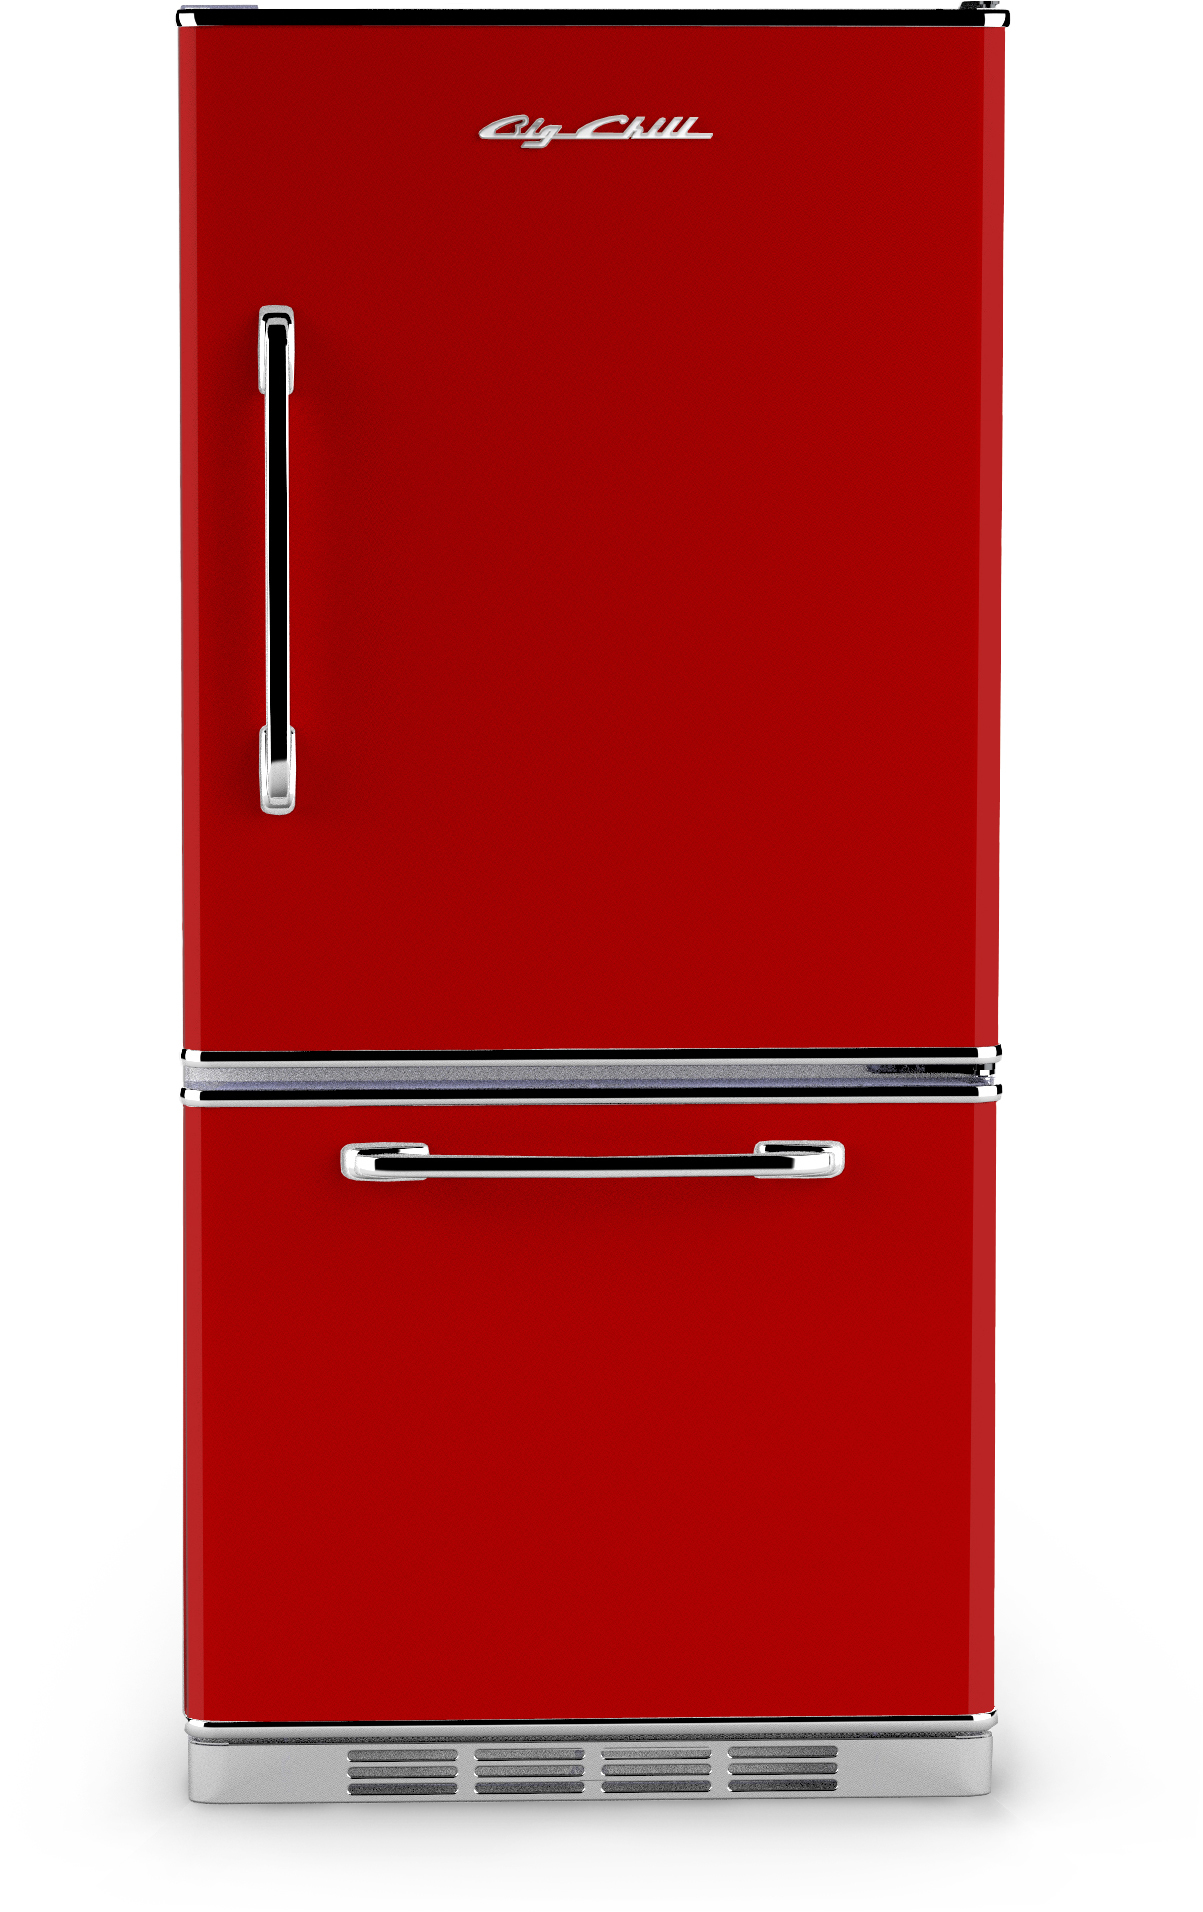 retro refrigerators with modern touch image ideas